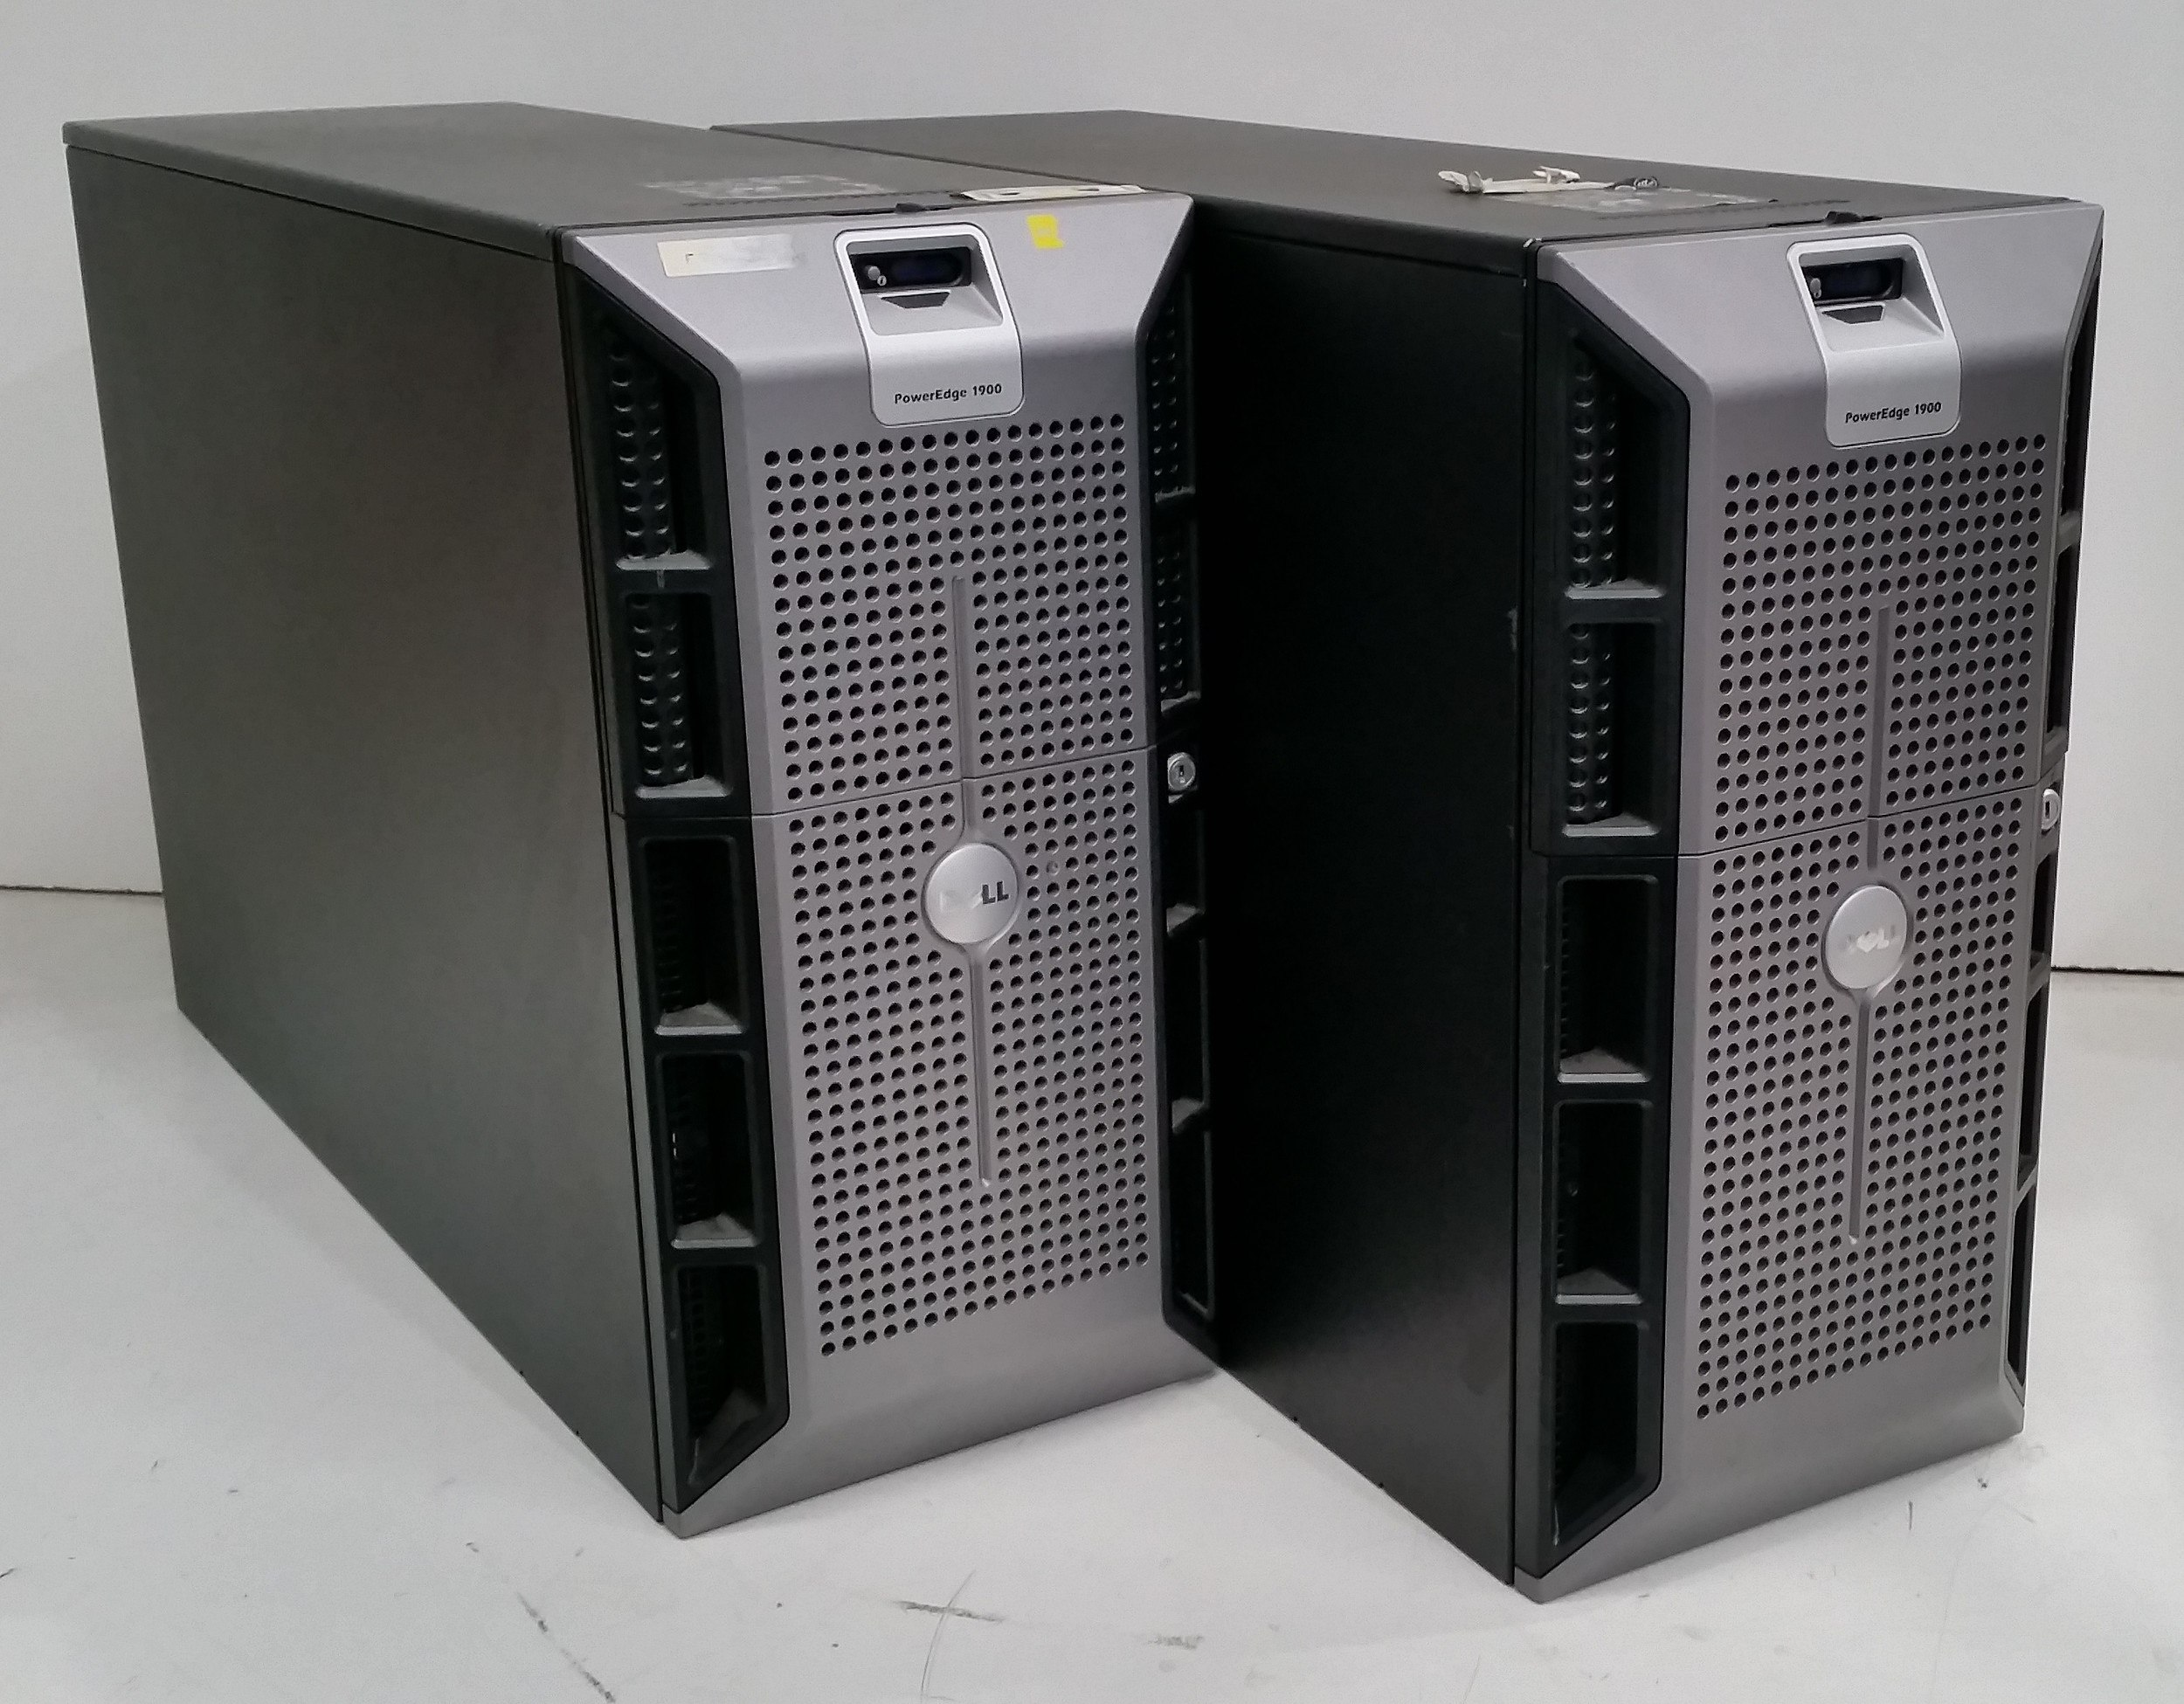 Dell PowerEdge 1900 Quad-Core Xeon (E5310) 1 60GHz and Xeon (E5320) 1 86GHz  Tower Servers - Lot of Two